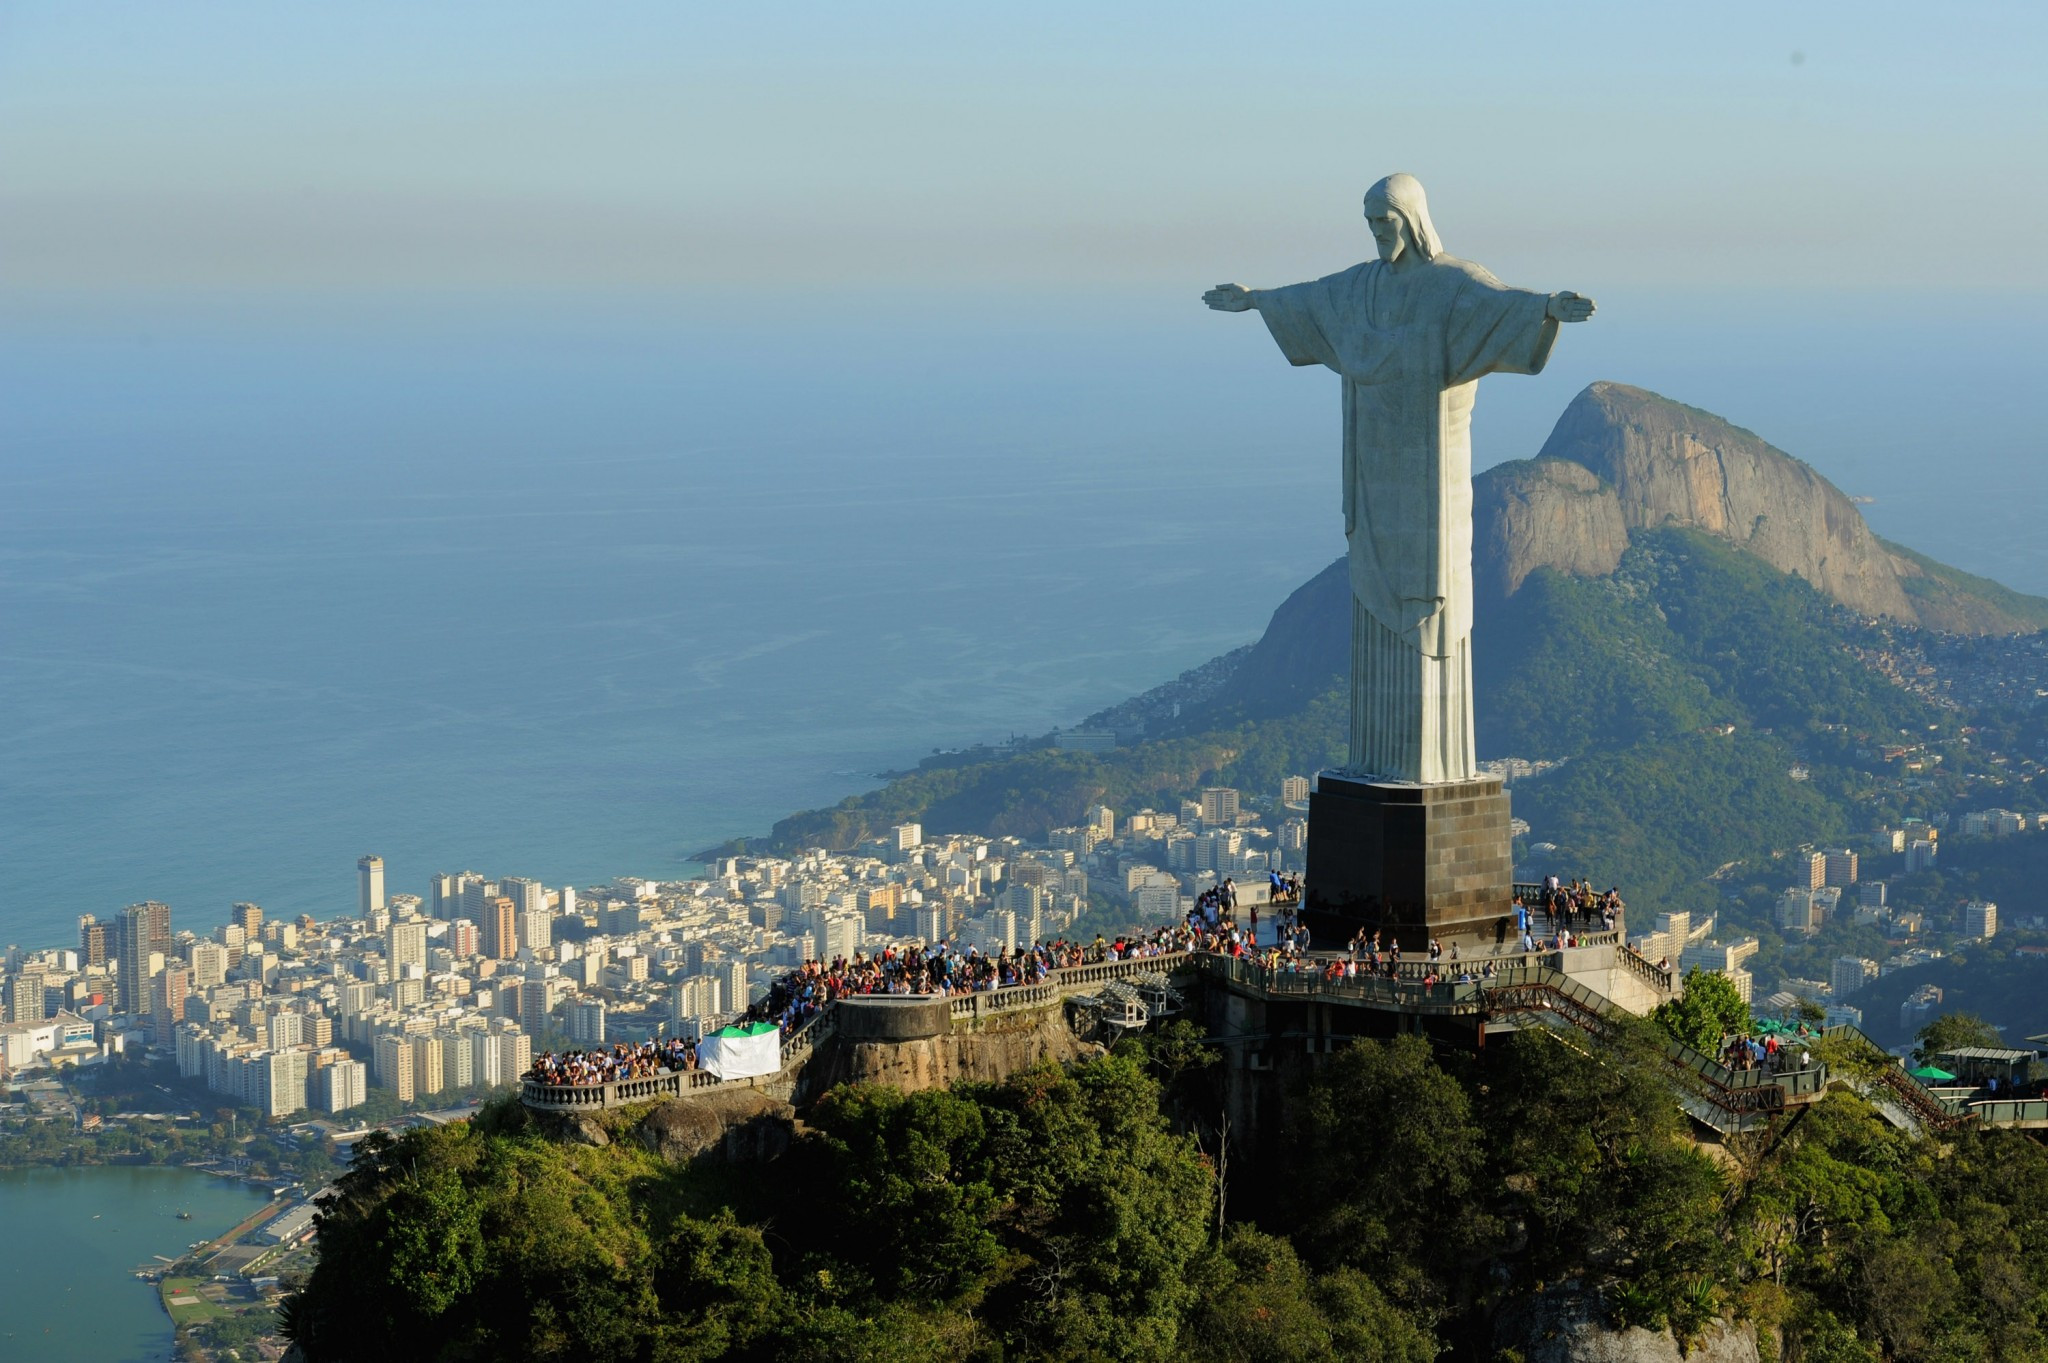 Rio de Janeiro had been initially chosen to host the ANOC General Assembly next April